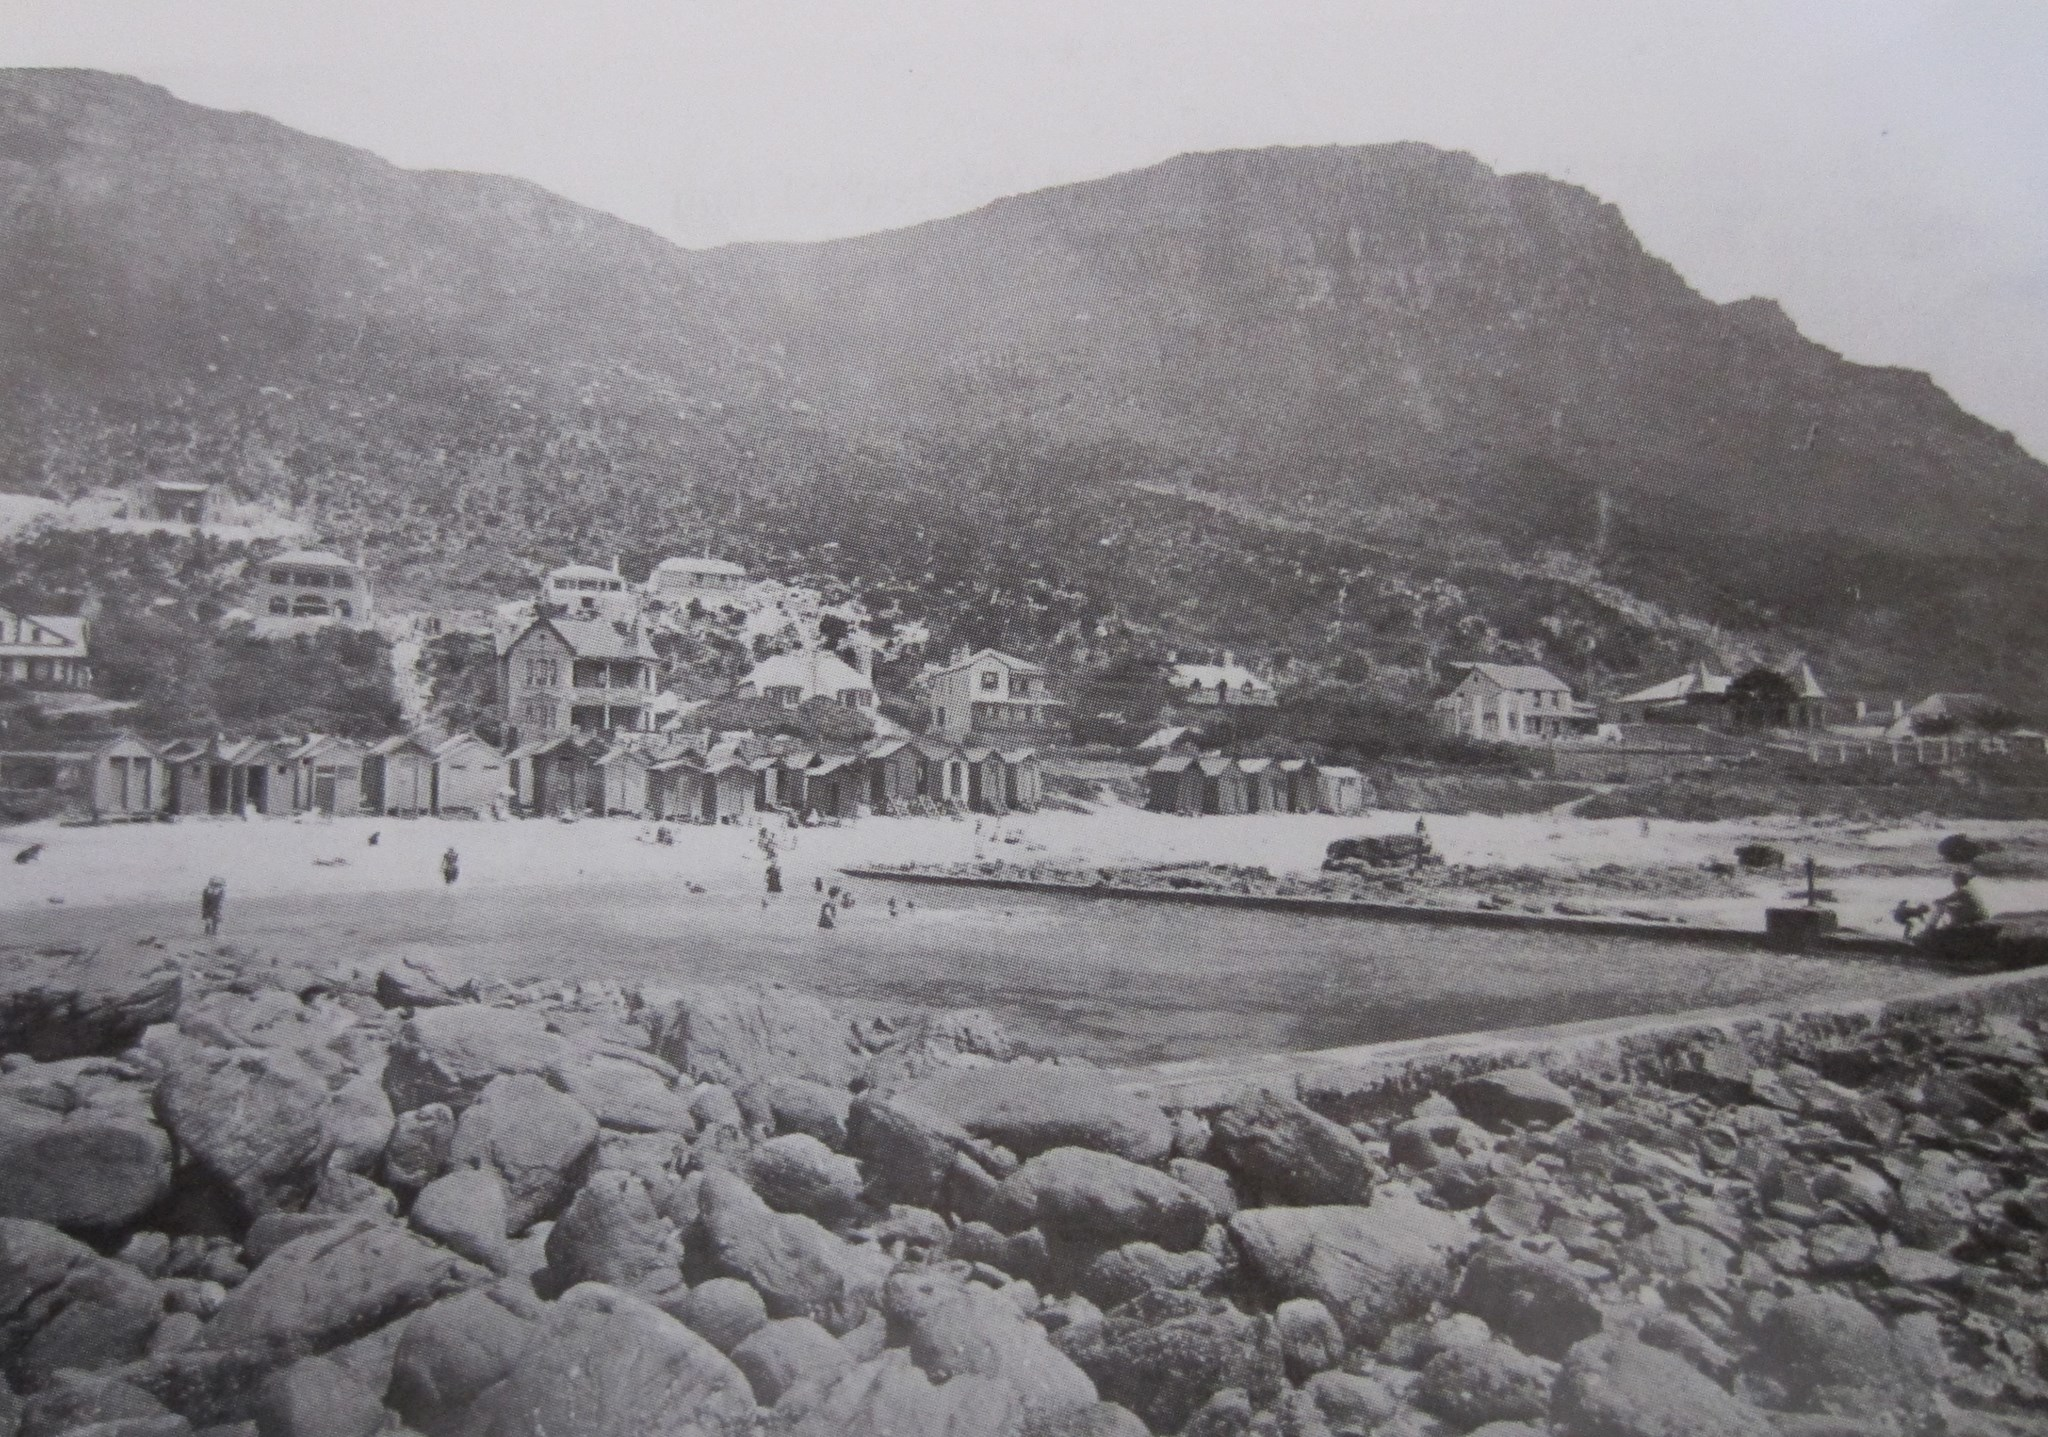 Milton Pool Sea Point, 1908